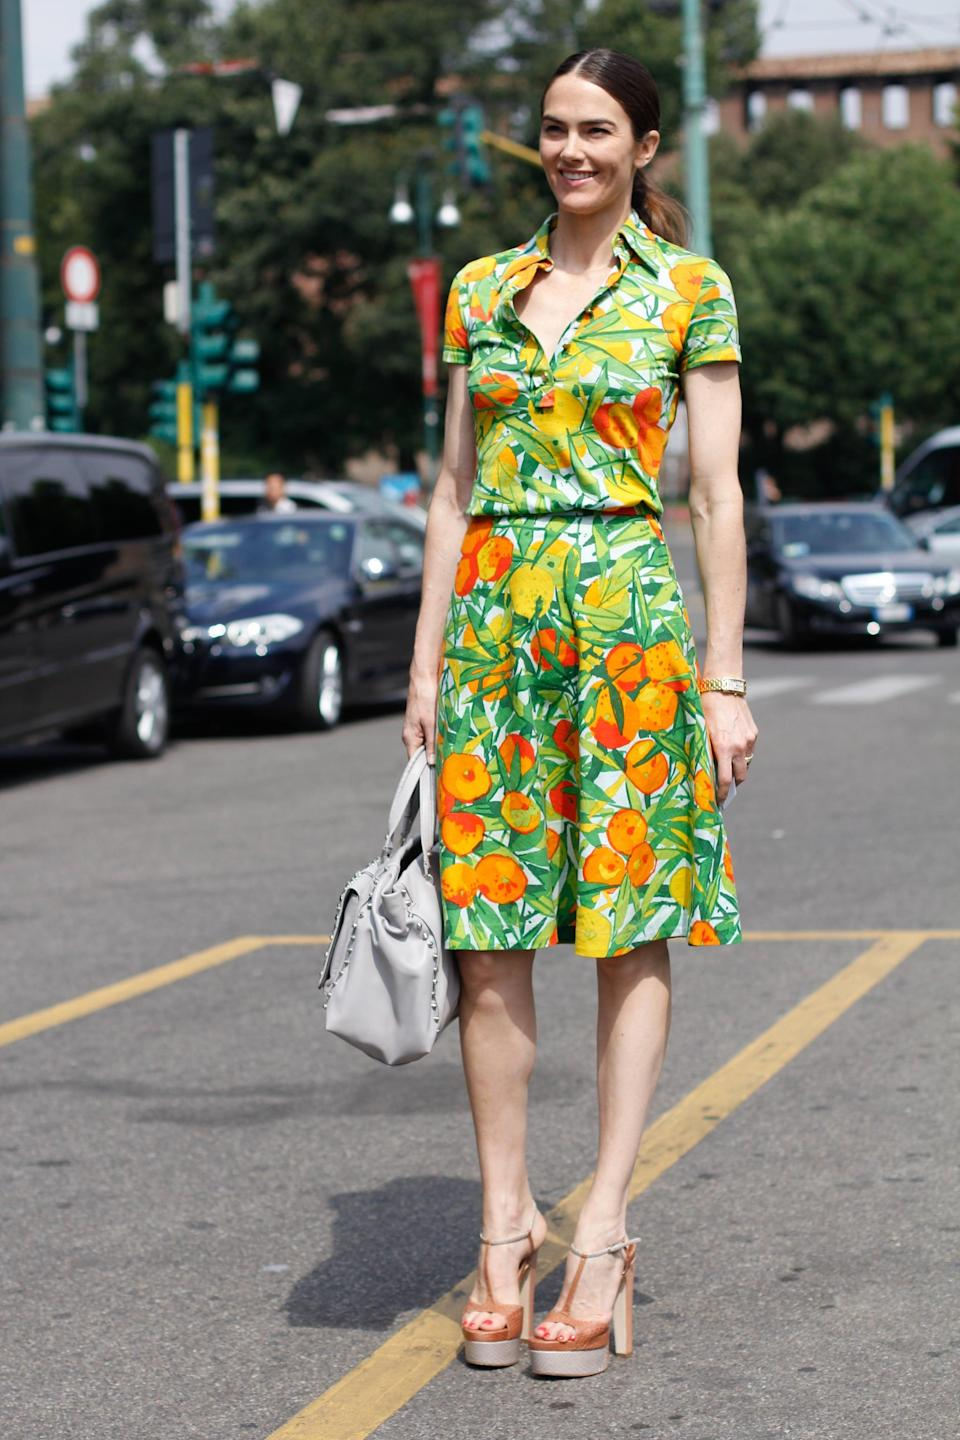 <p>Charm the pants off, well, whoever you happen to run into with a retro-inspired look like this one.</p>